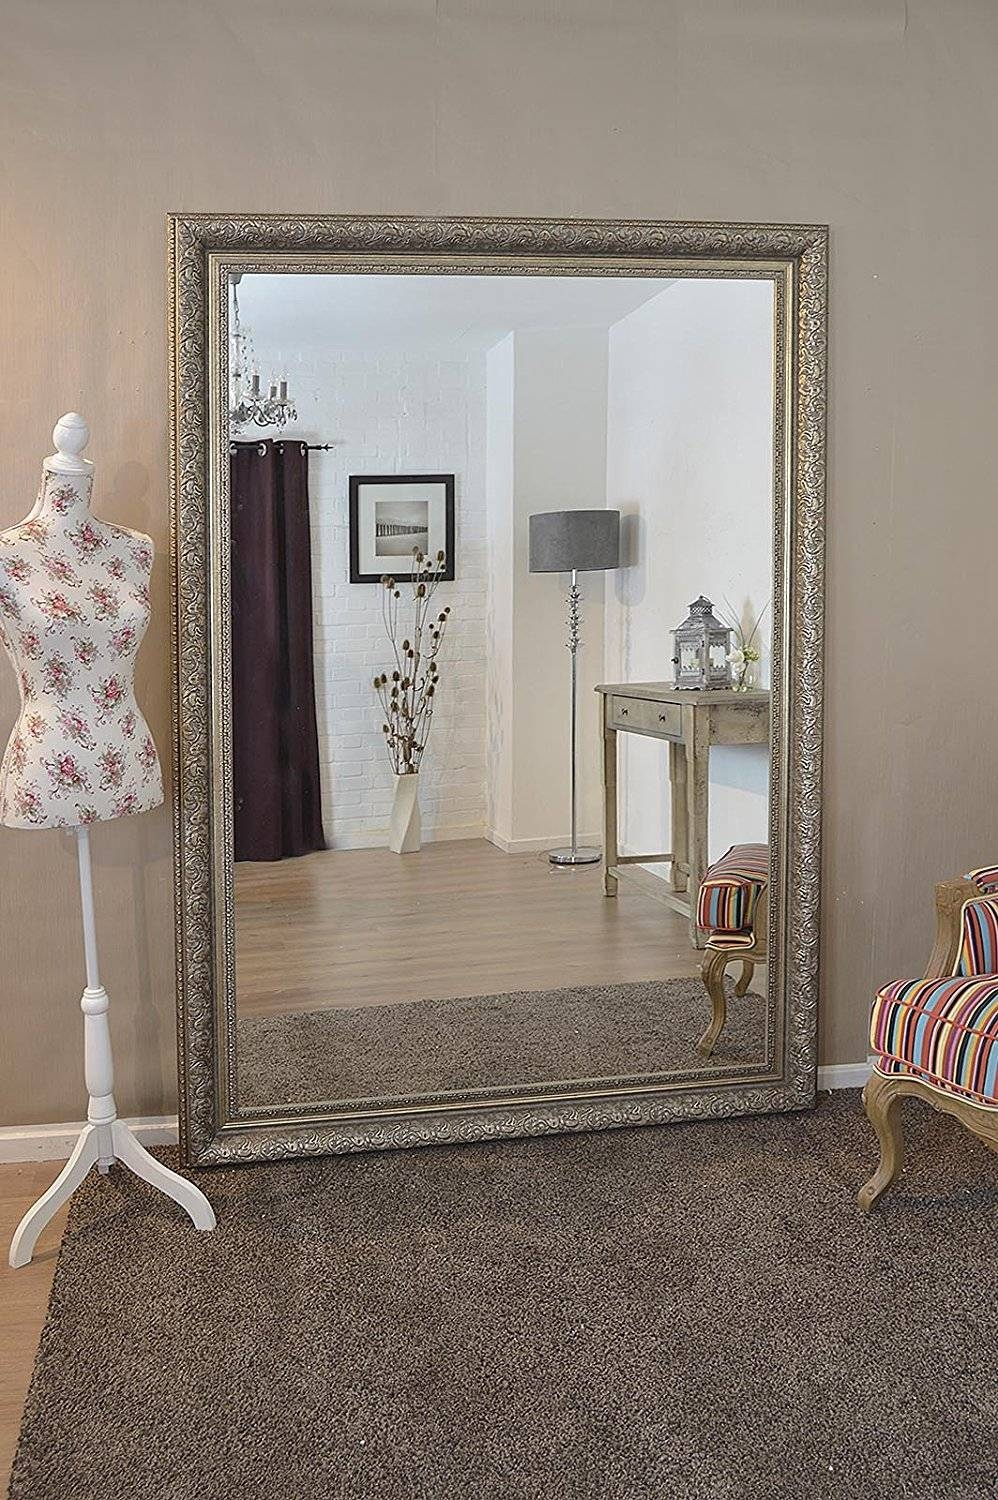 Large Silver Wall Mirror 57 Nice Decorating With Large Ornate Wall Within Extra Large Ornate Mirrors (View 18 of 25)